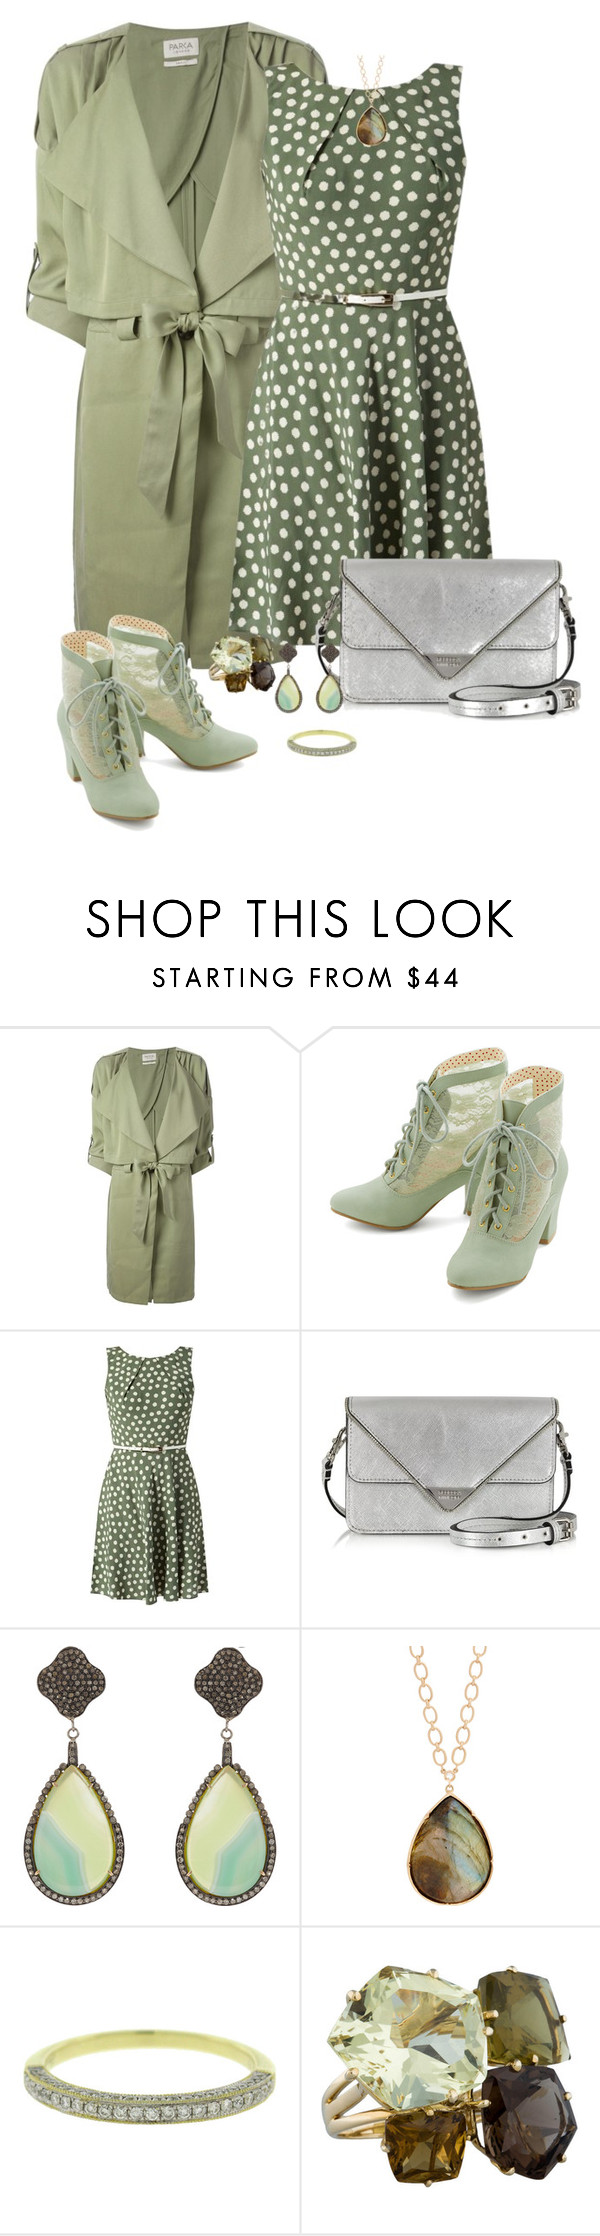 """""""green"""" by mariacaniuca ❤ liked on Polyvore featuring Parka London, But Another Innocent Tale, Apricot, Rebecca Minkoff, Carole Shashona, Irene Neuwirth and Allurez"""